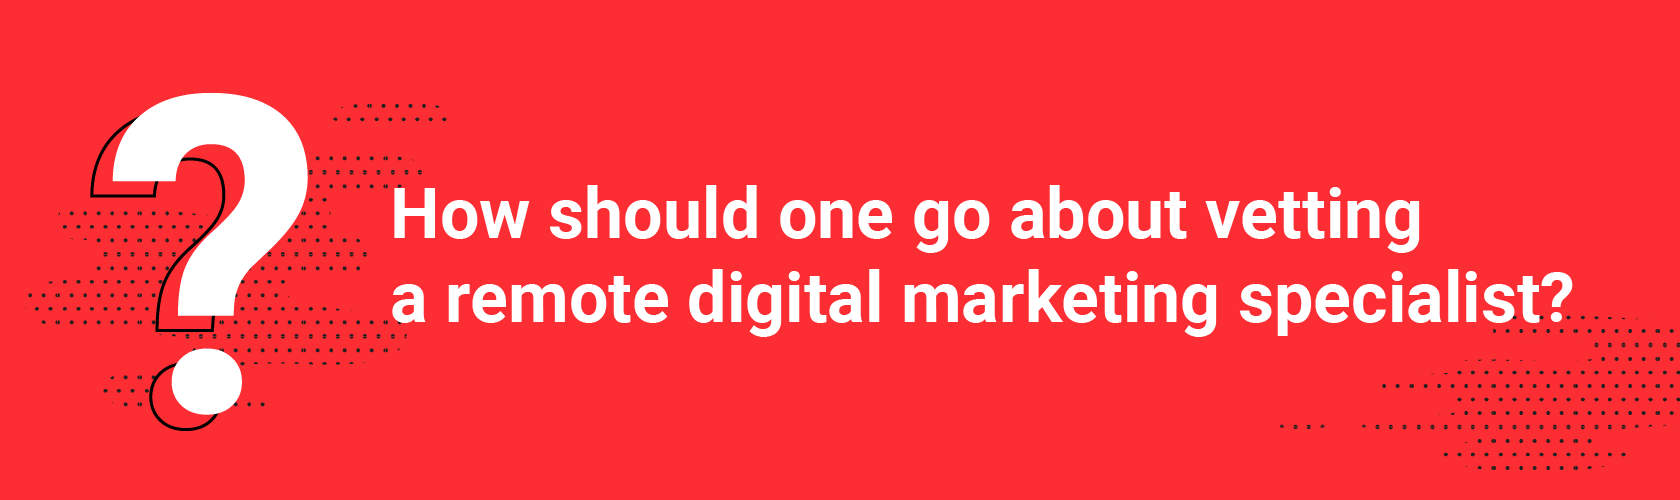 How should one go about vetting a remote digital marketing specialist?